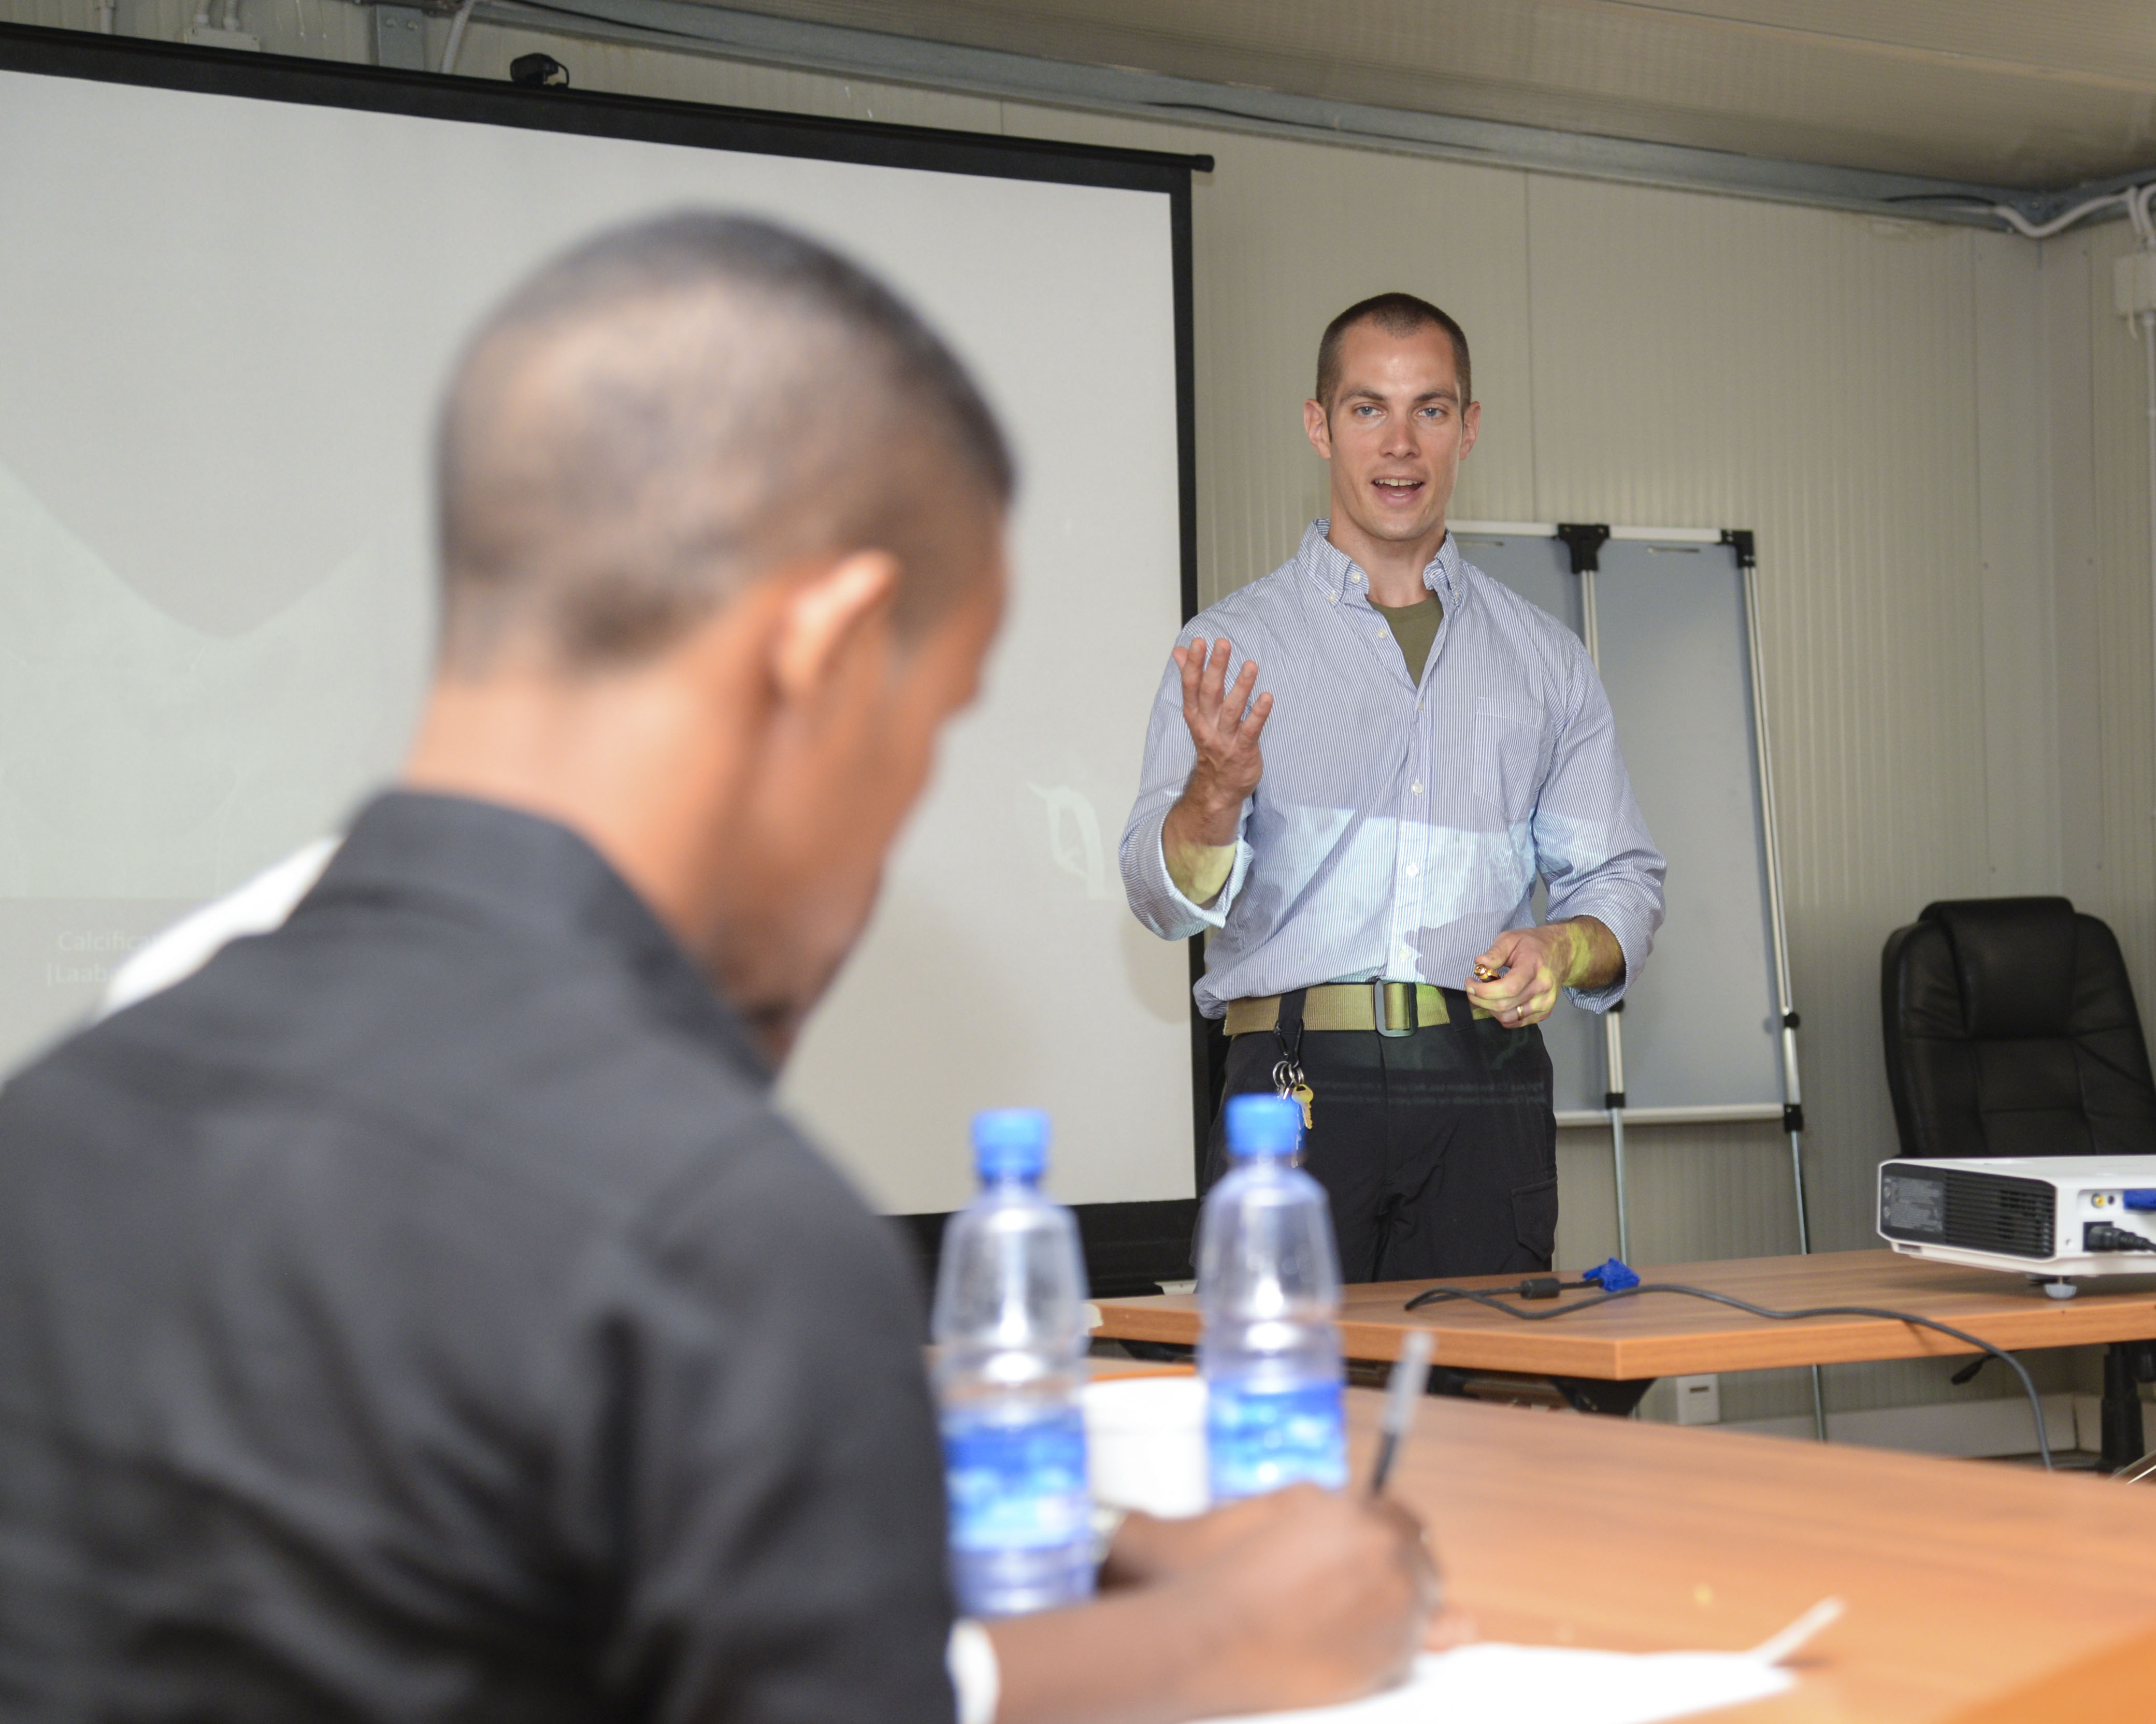 U.S. Army Maj. Andrew Mosier, 403rd Civil Affairs Battalion physician, instructs nearly 20 Somali doctors during the Continuing Medical Education Conference in Mogadishu, Somalia, Sept. 14, 2016. The conference covered topics concerning treatment for different types of broken bones, swollen lymph nodes, and arthritis, and they also practiced reading radiographs. (U.S. Air Force photo by Staff Sgt. Benjamin Raughton)